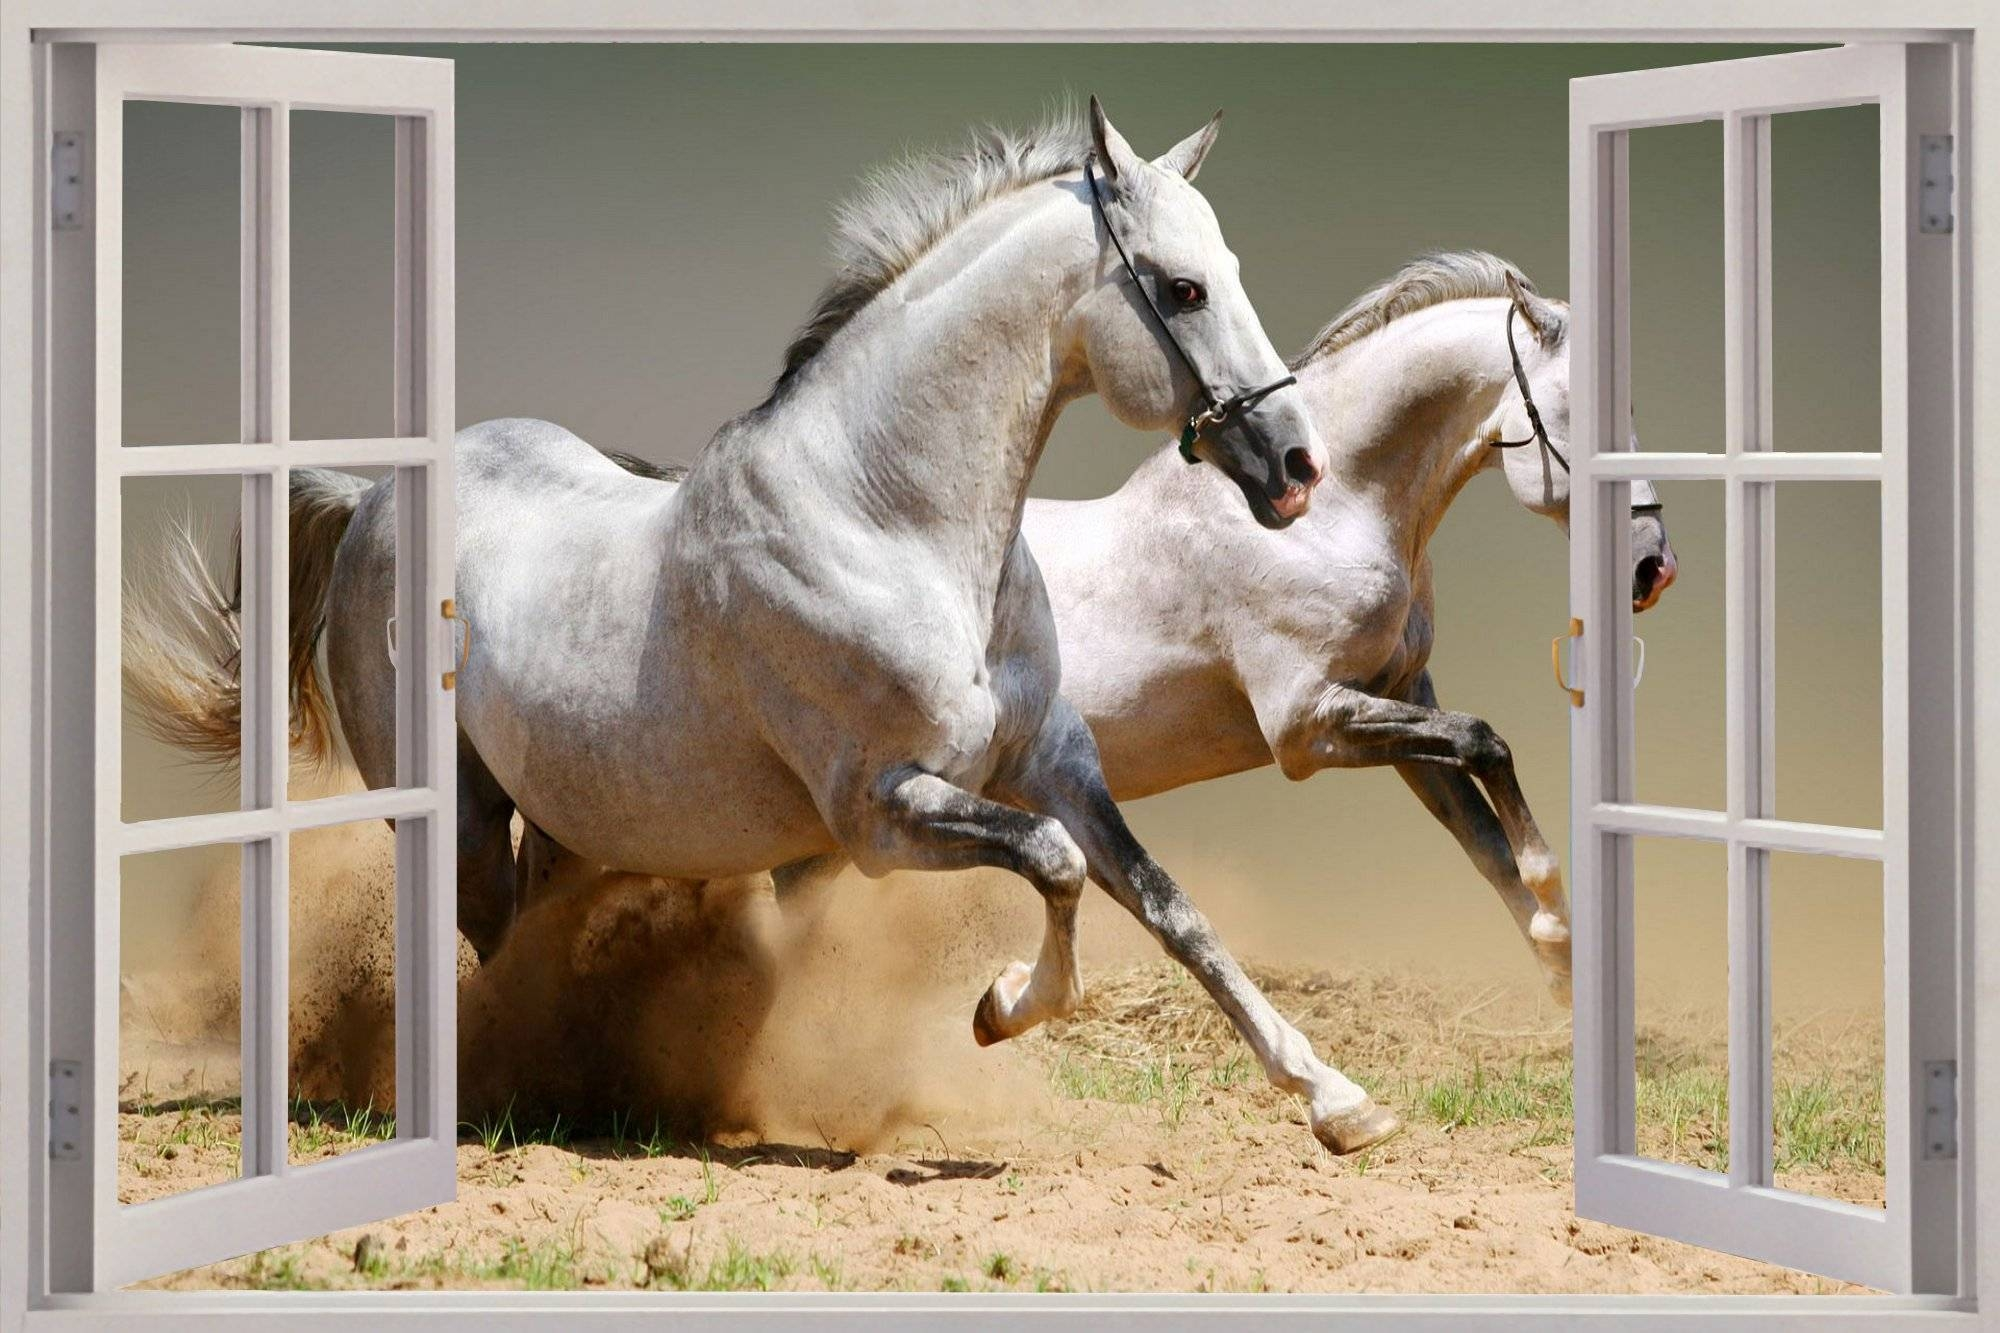 3D Horse Wall Art | Wallartideas With Regard To Most Current 3D Horse Wall Art (Gallery 2 of 20)